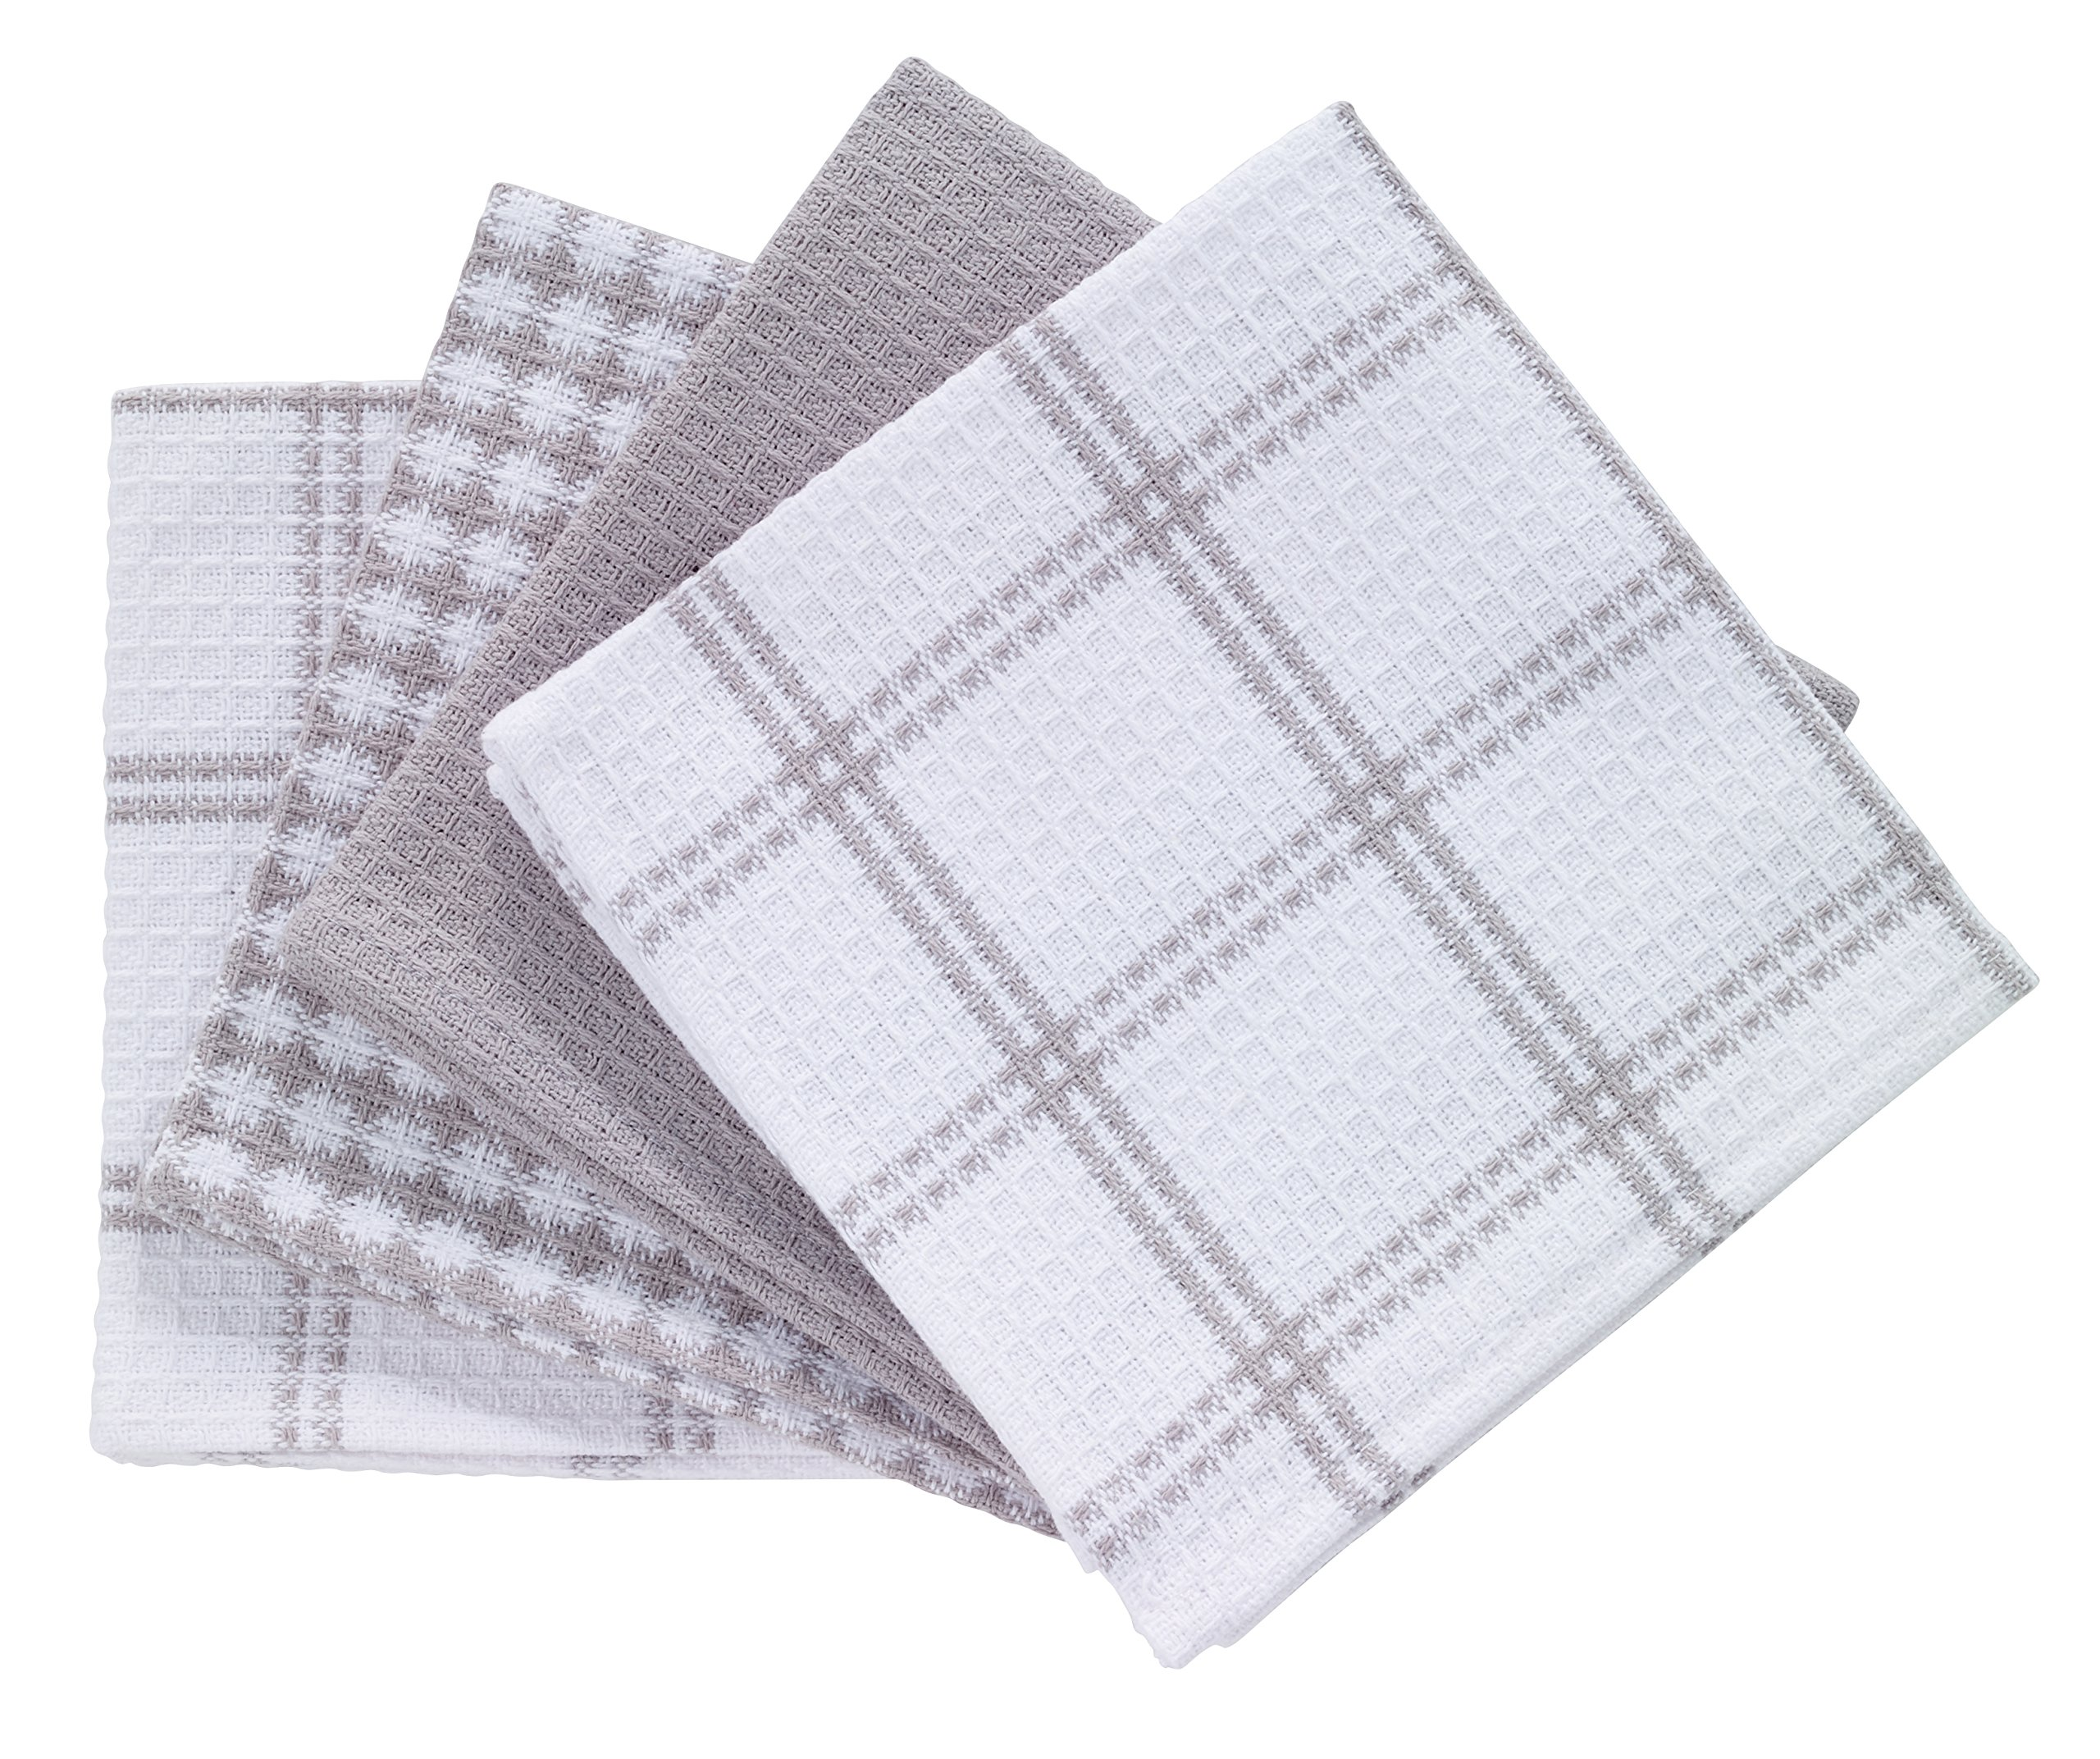 "T-fal Textiles 100% Cotton Waffle Weave Kitchen Dish Cloths, 12"" x13"", Set of 4 Designs, Gray"